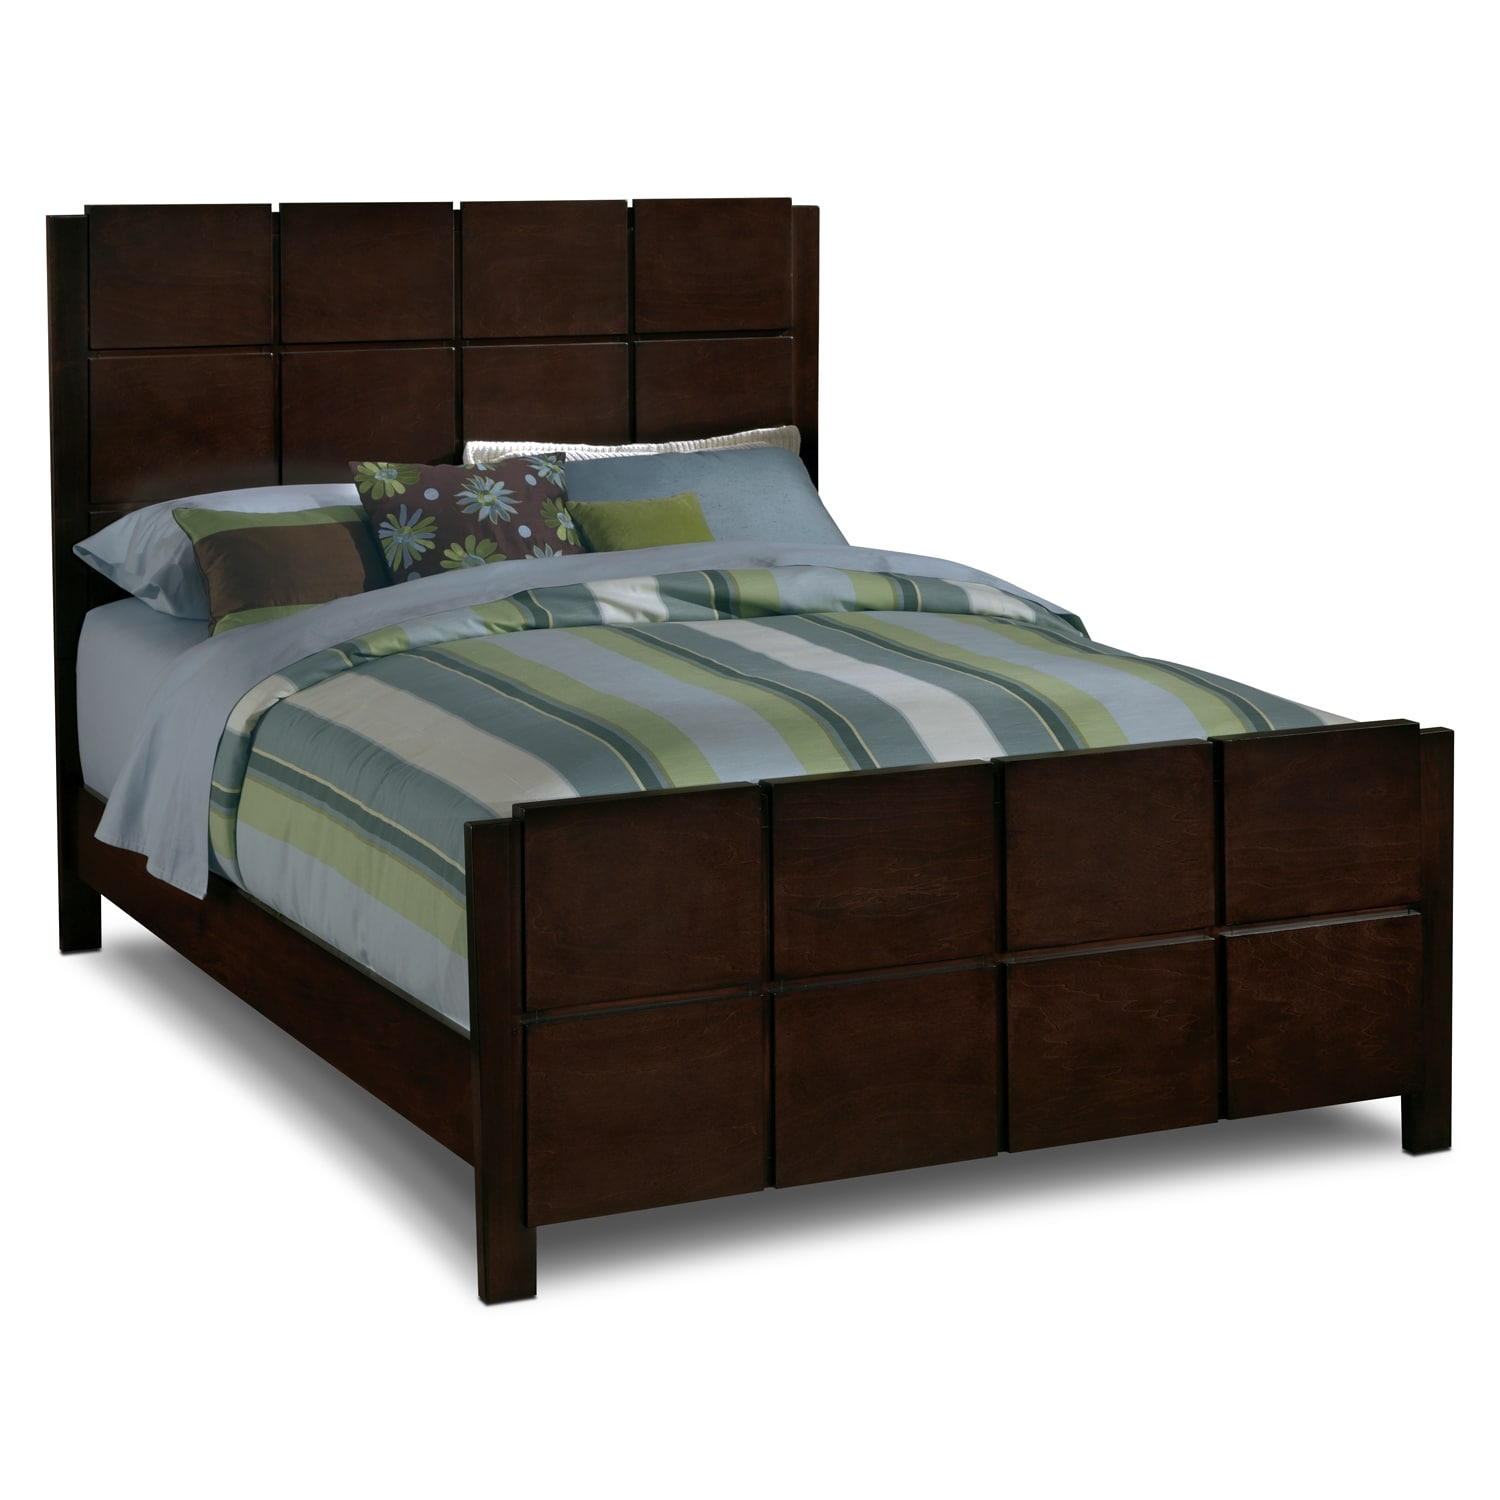 Mosaic queen bed value city furniture for Furniture furniture